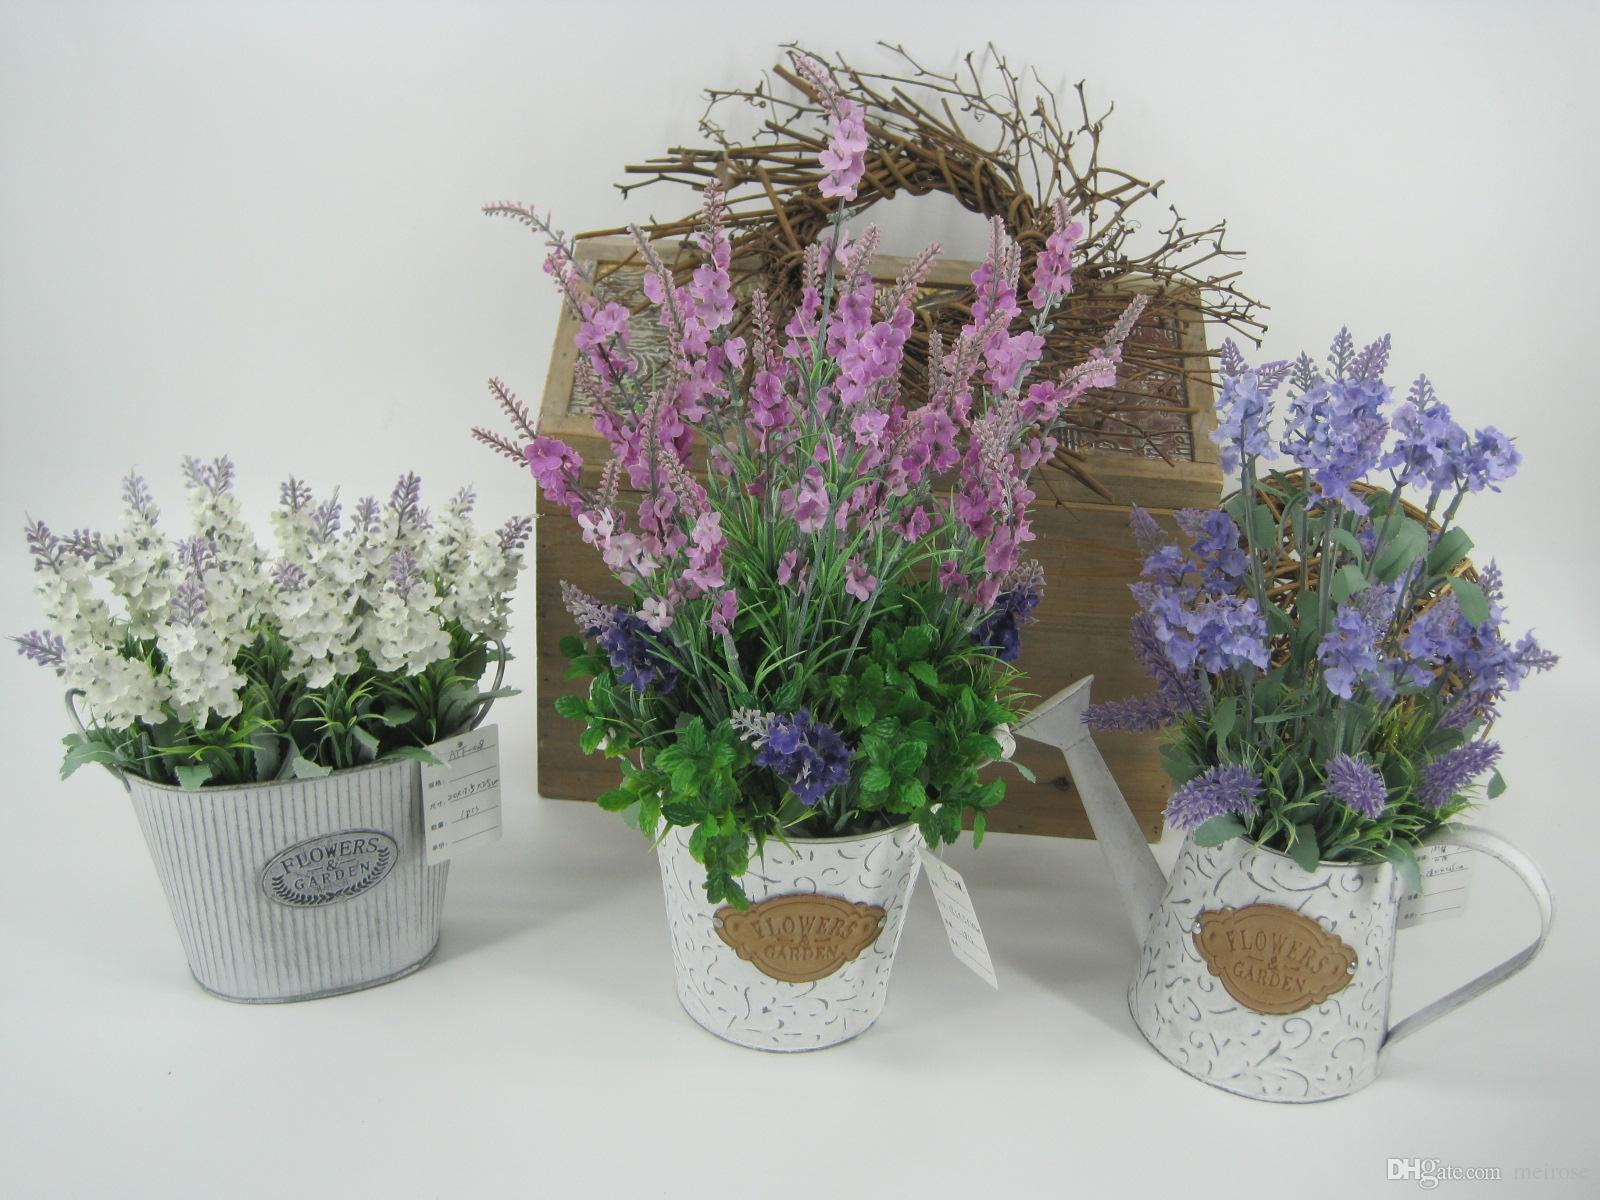 Artificial Lavender Plants With Metal Pots Table Flower Whitewashed Potted plant for Wedding Holiday Special days Home Decor 125 -1066